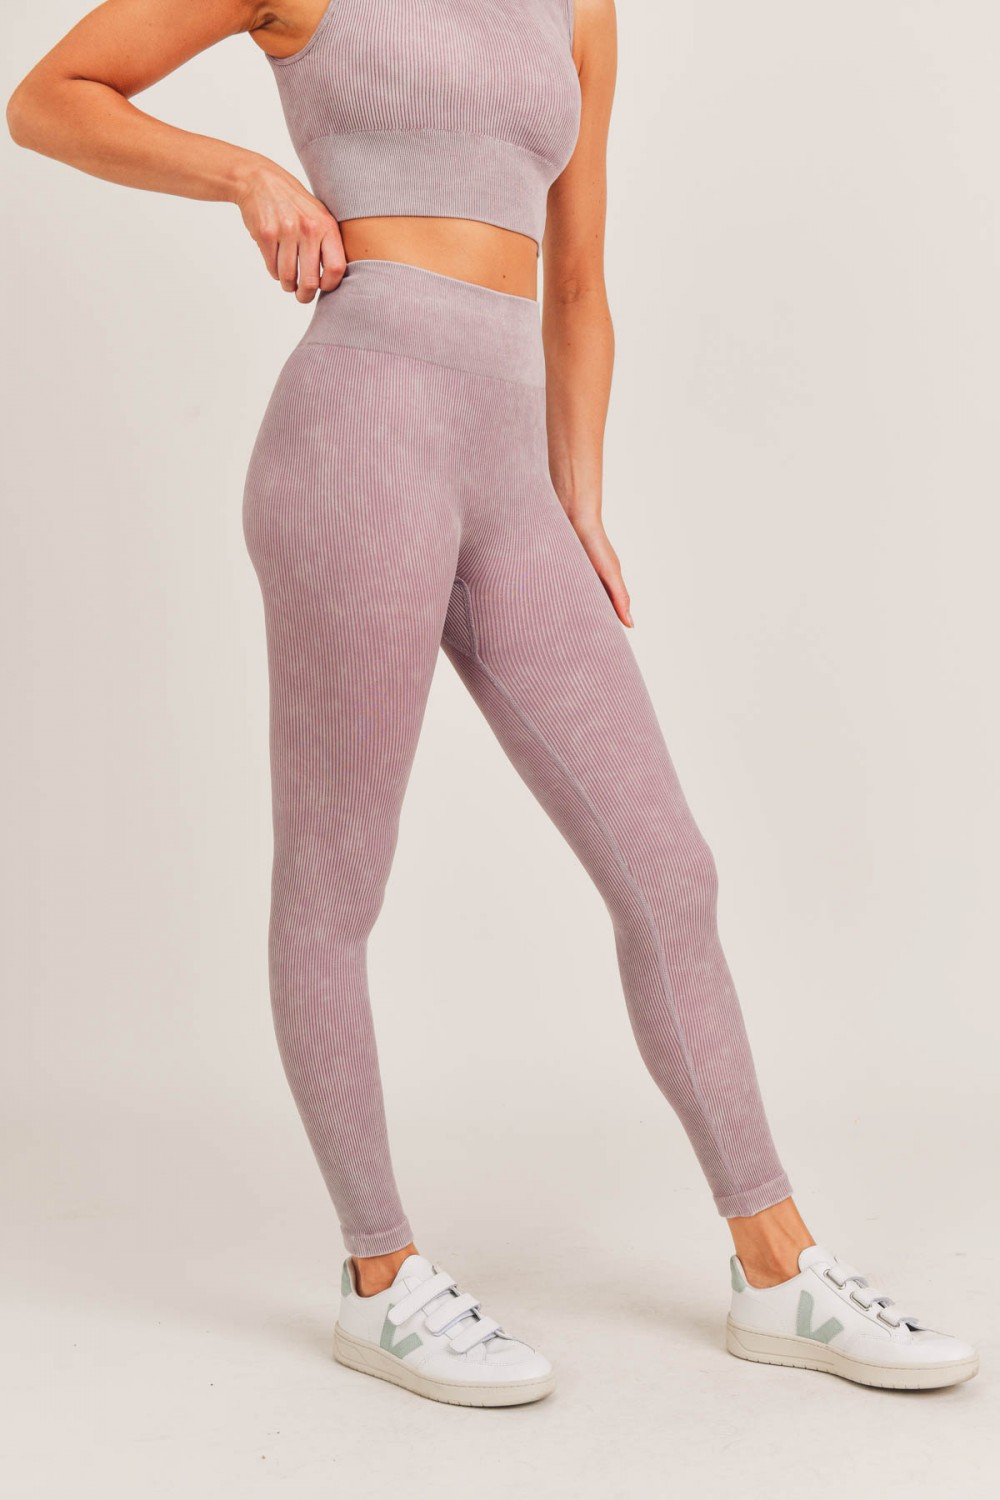 APH2801<br/>Ribbed Essential Mineral Wash Seamless Highwaist Leggings (APH2801)